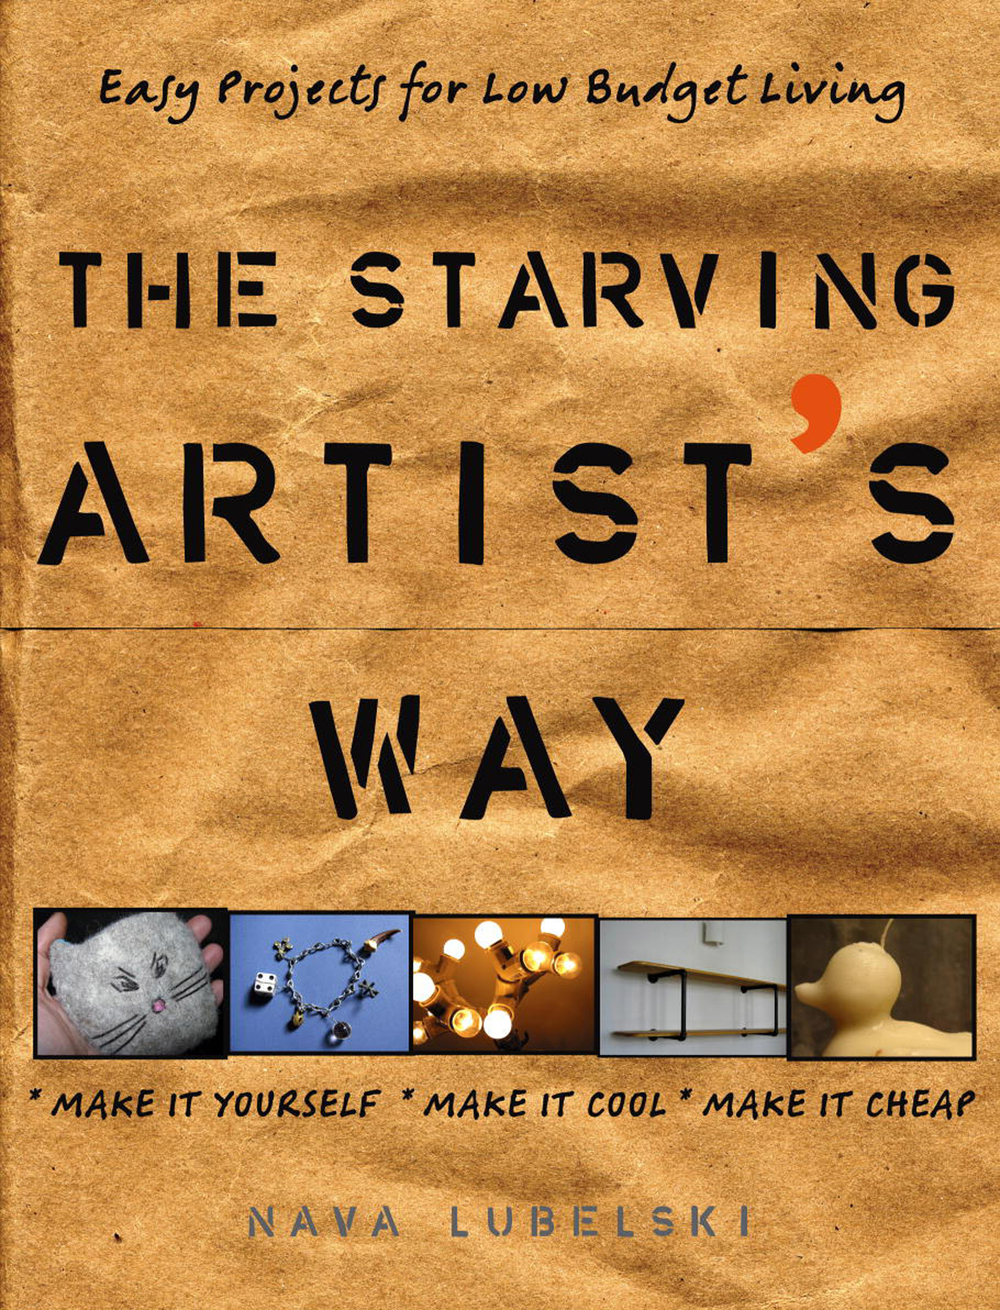 THE-STARVING-ARTISTS-WAY-ss6.jpg